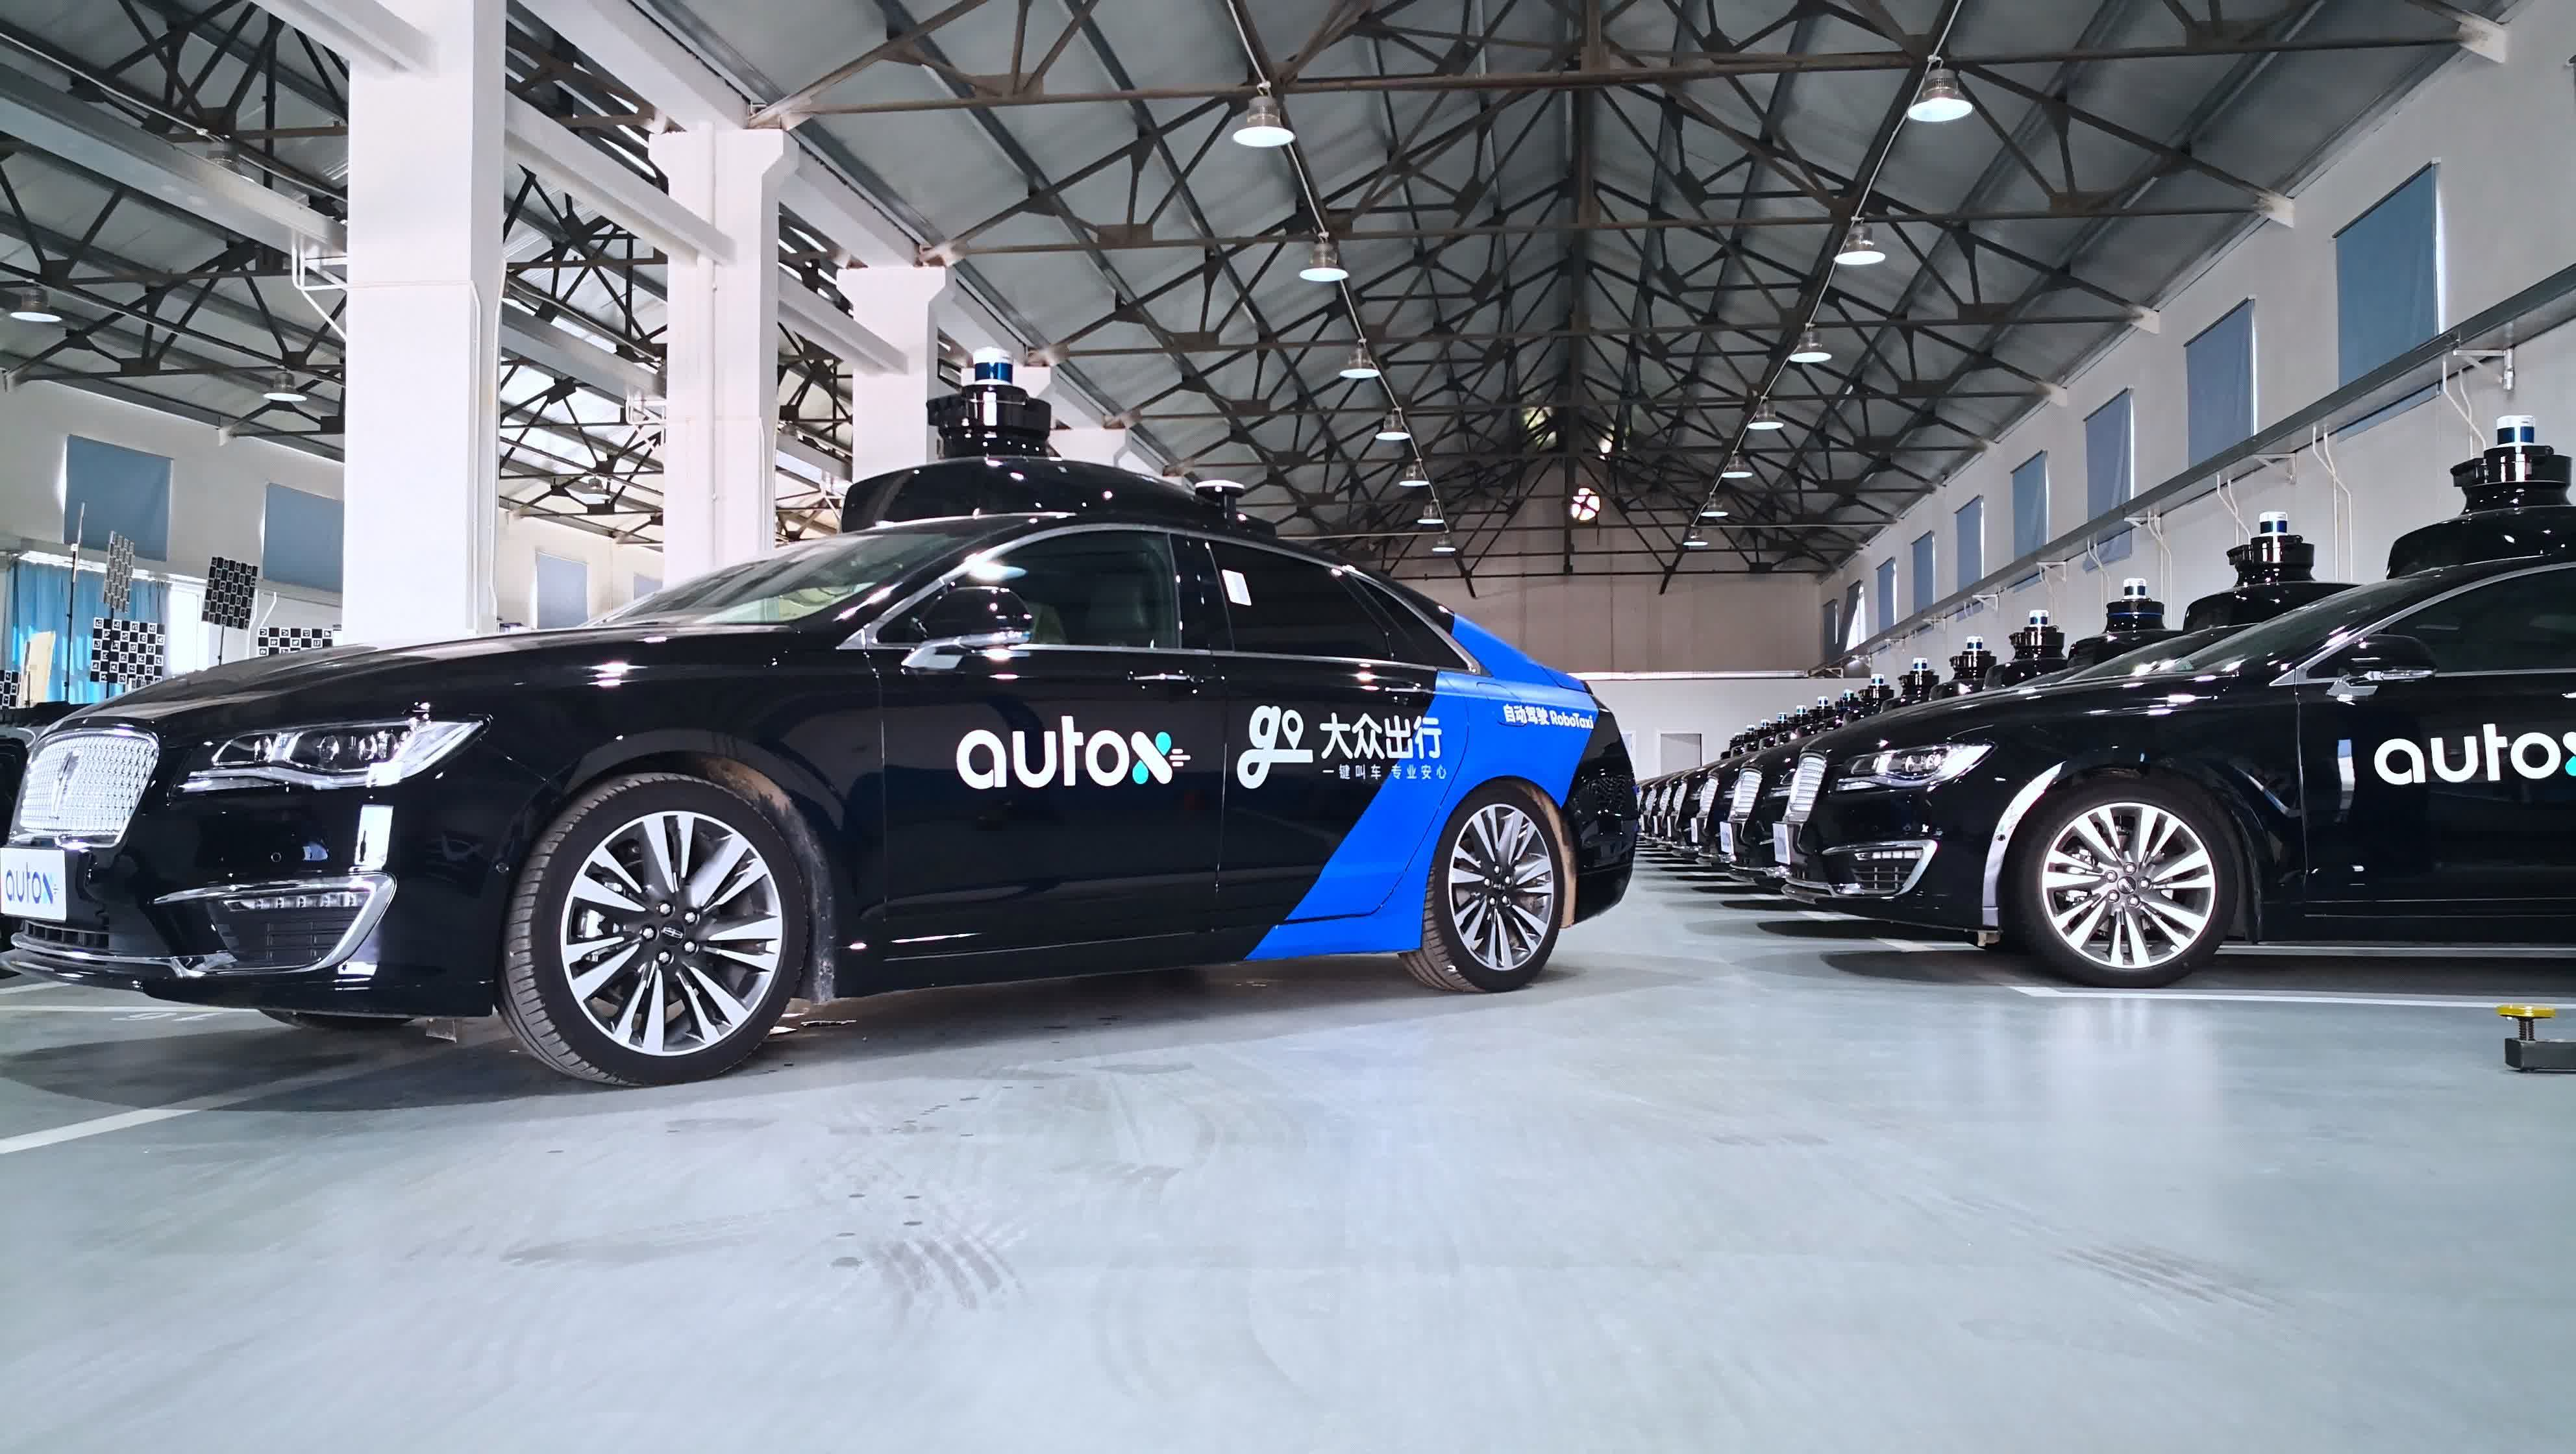 AutoX has launched its robotaxi service in Shenzhen